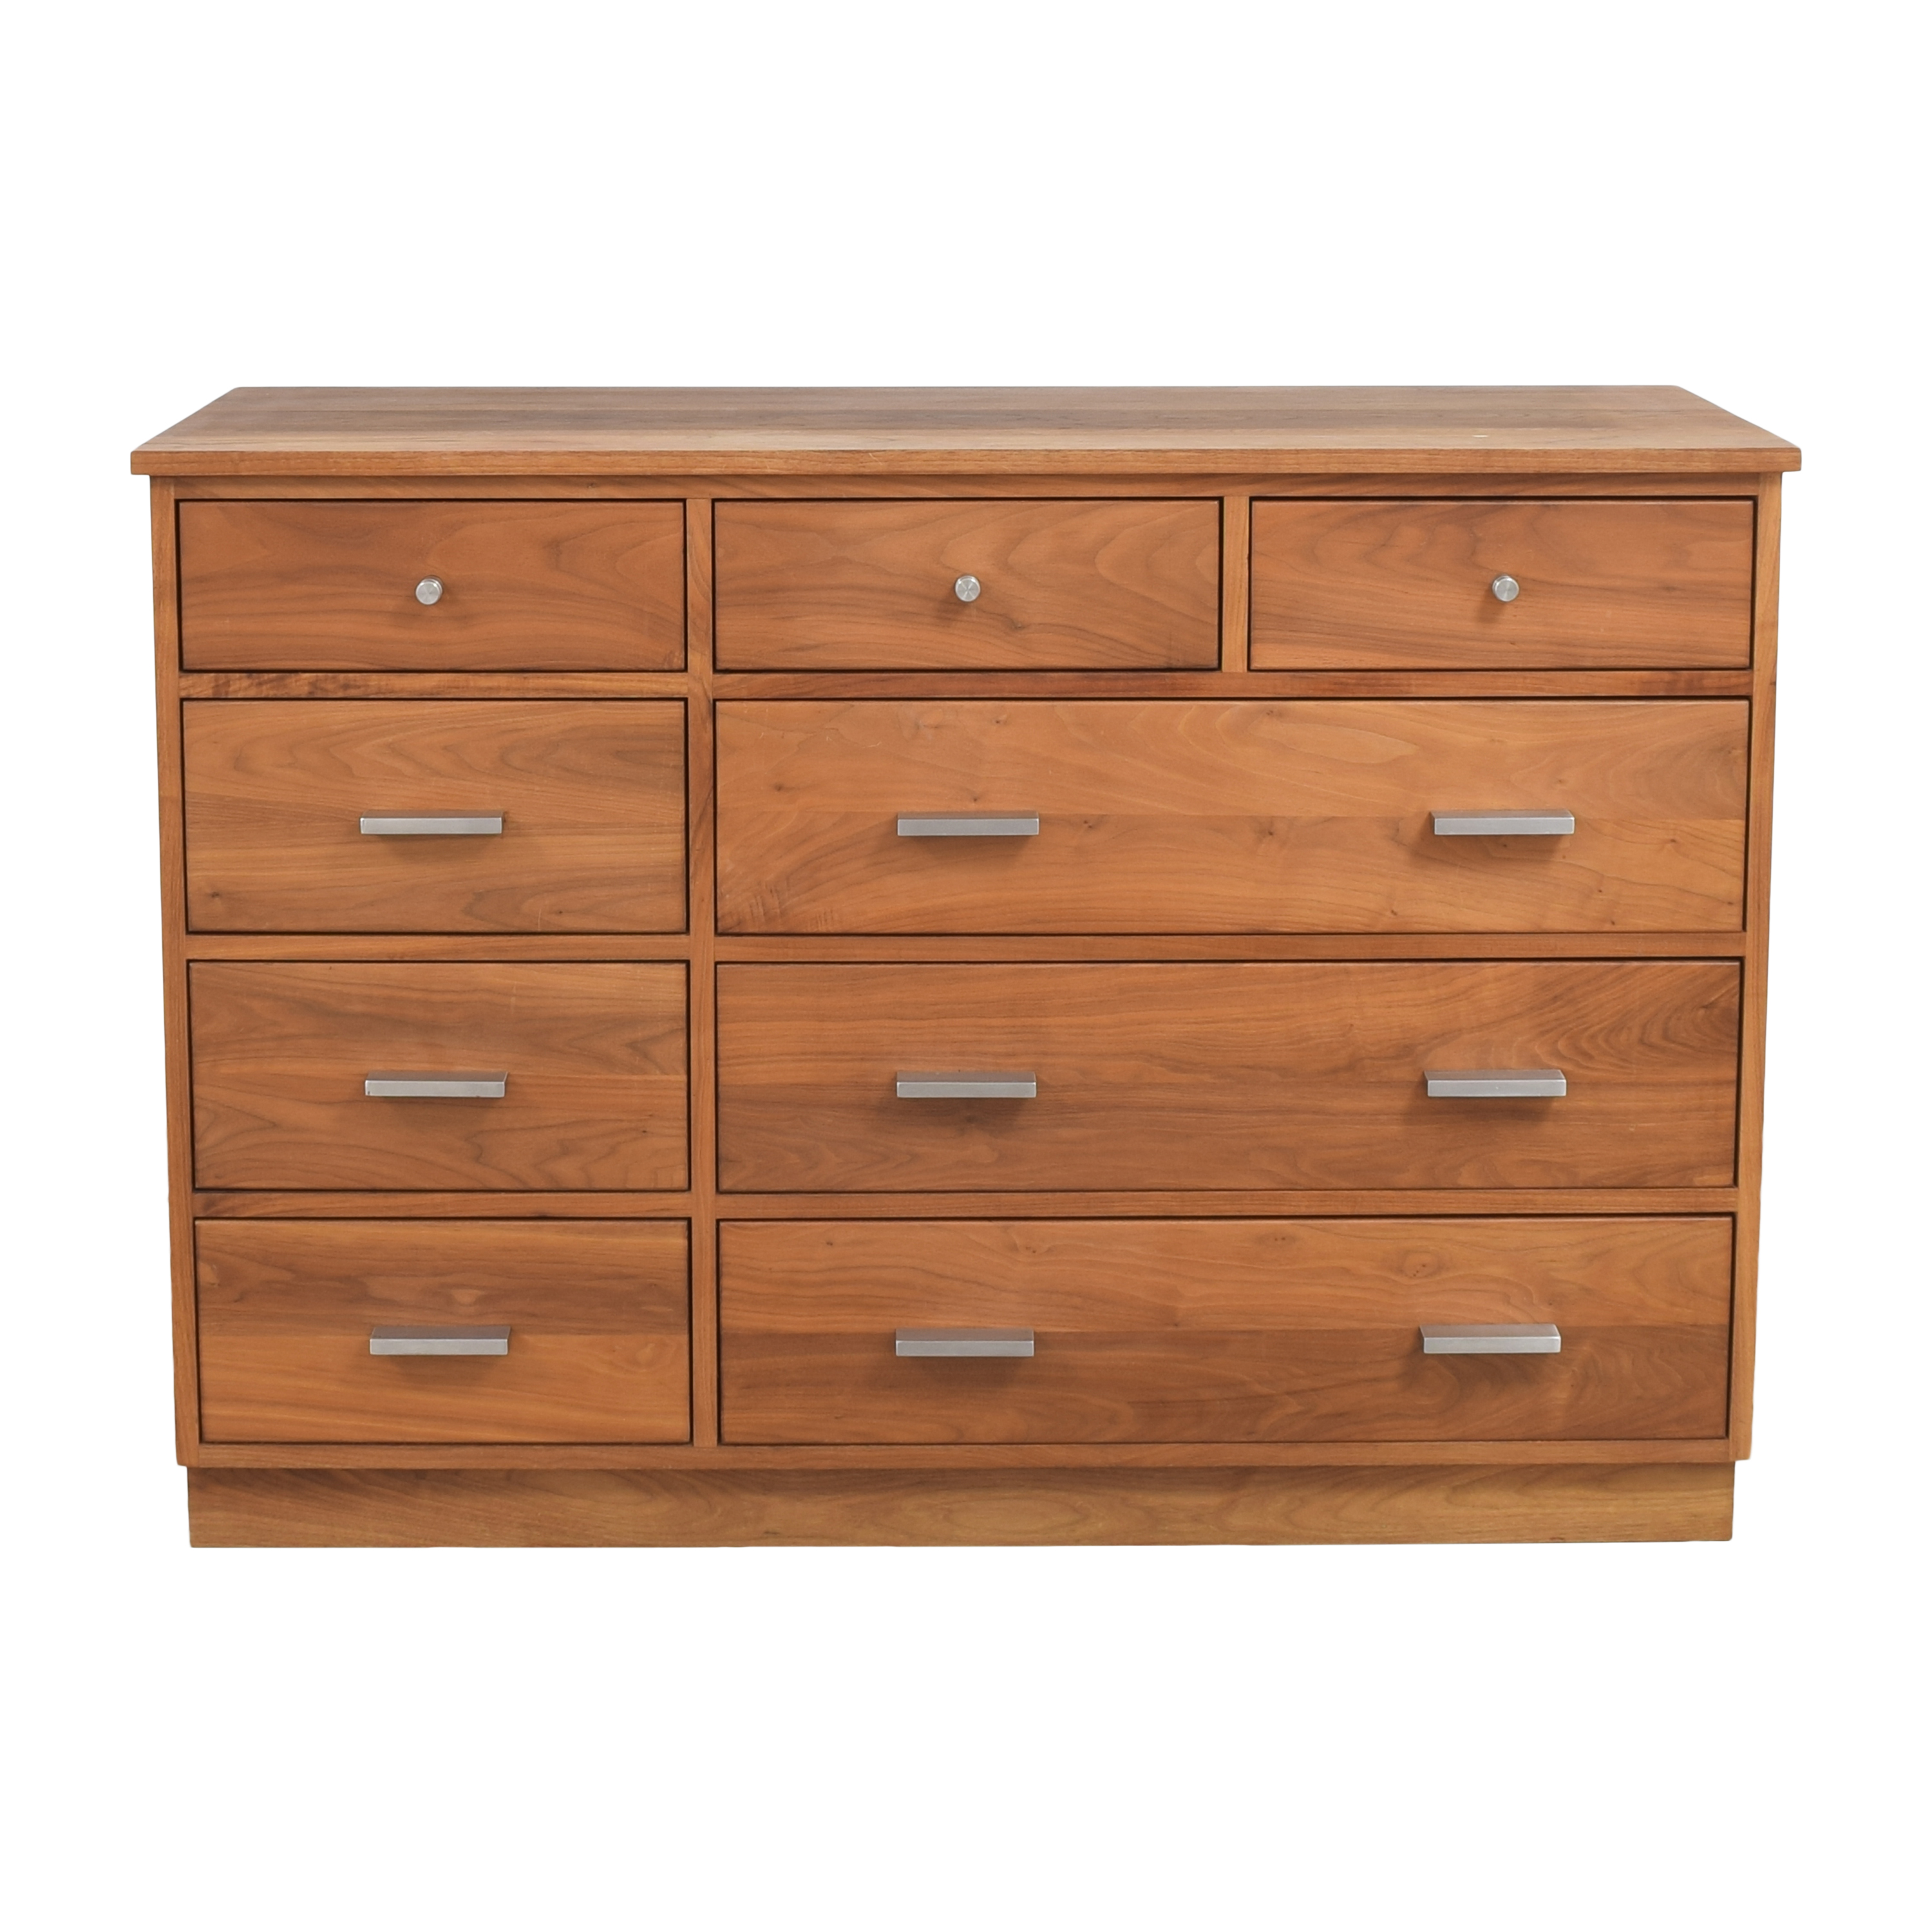 Room & Board Room & Board Linear Nine Drawer Dresser dimensions